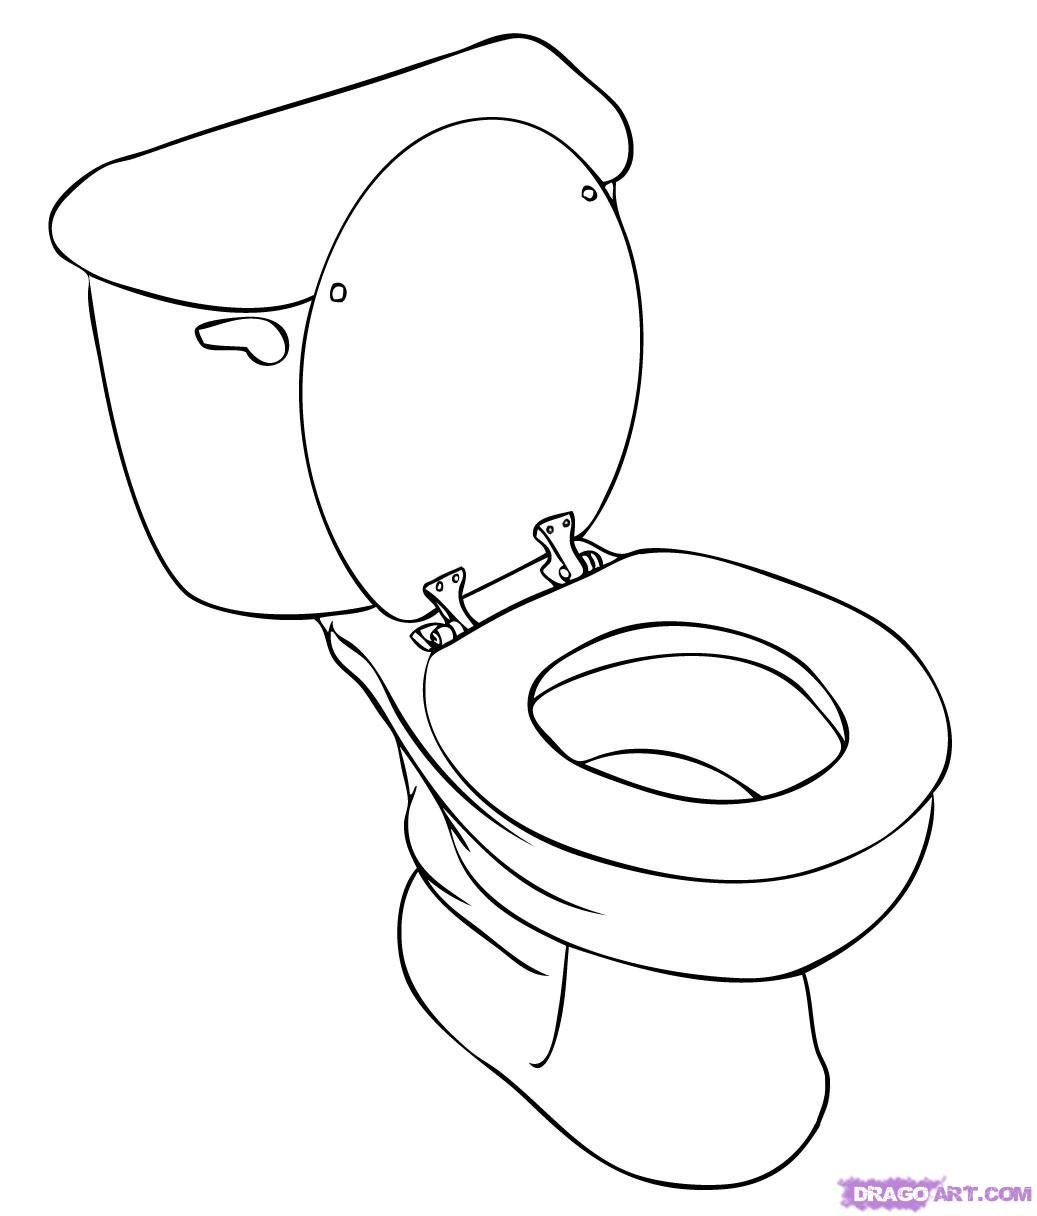 How to draw the Toilet bowl with a pencil step by step